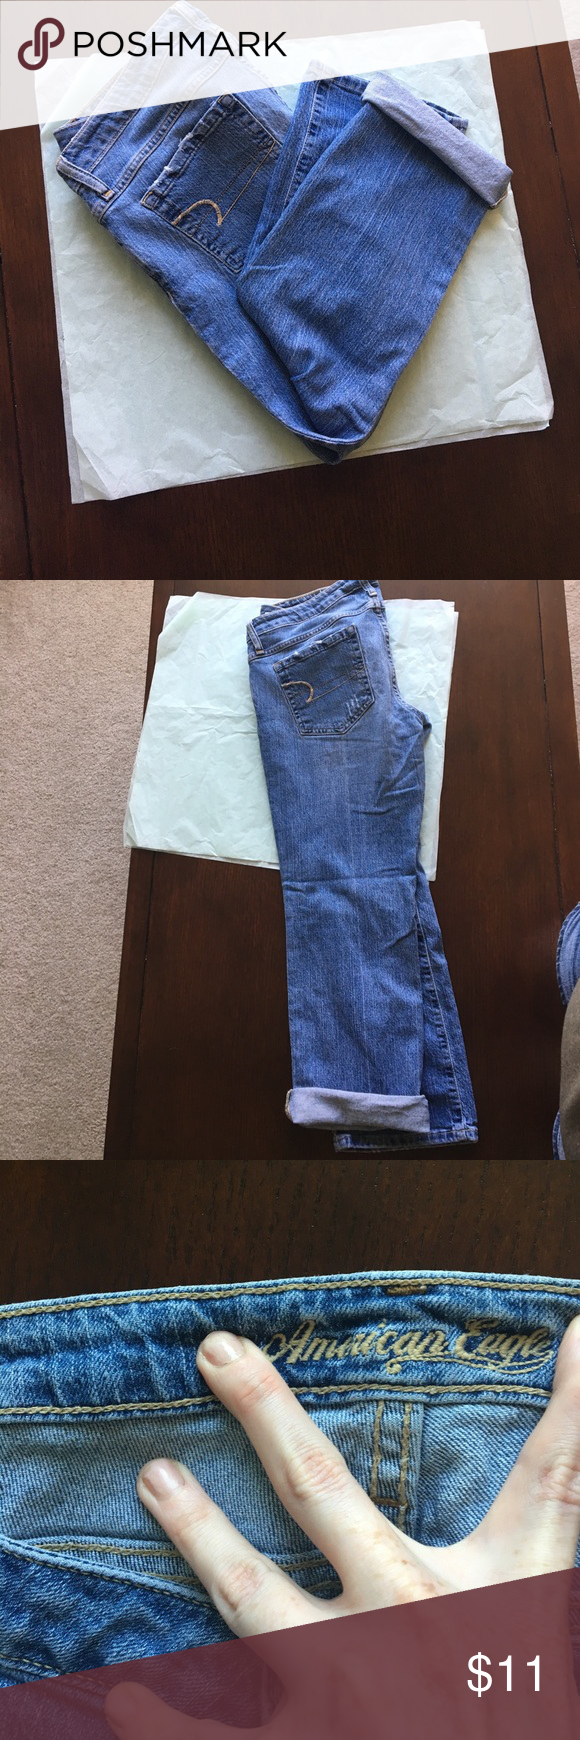 American Eagle denim crops Well loved AE denim crops. No signs of wear, I'm only owner, but have been broken in (makes the best jeans though! Right?)  inseam without cuff approx 26 inches with one inch cuff double folded approx 23 inches (all other measurements given without cuff leg)  hip width approx 17 inches hip to bottom approx 34 inches top of back to bottom of crop approx 37 inches (love higher backs of denim) softness between legs just from wear no holes. Distressed denim was…